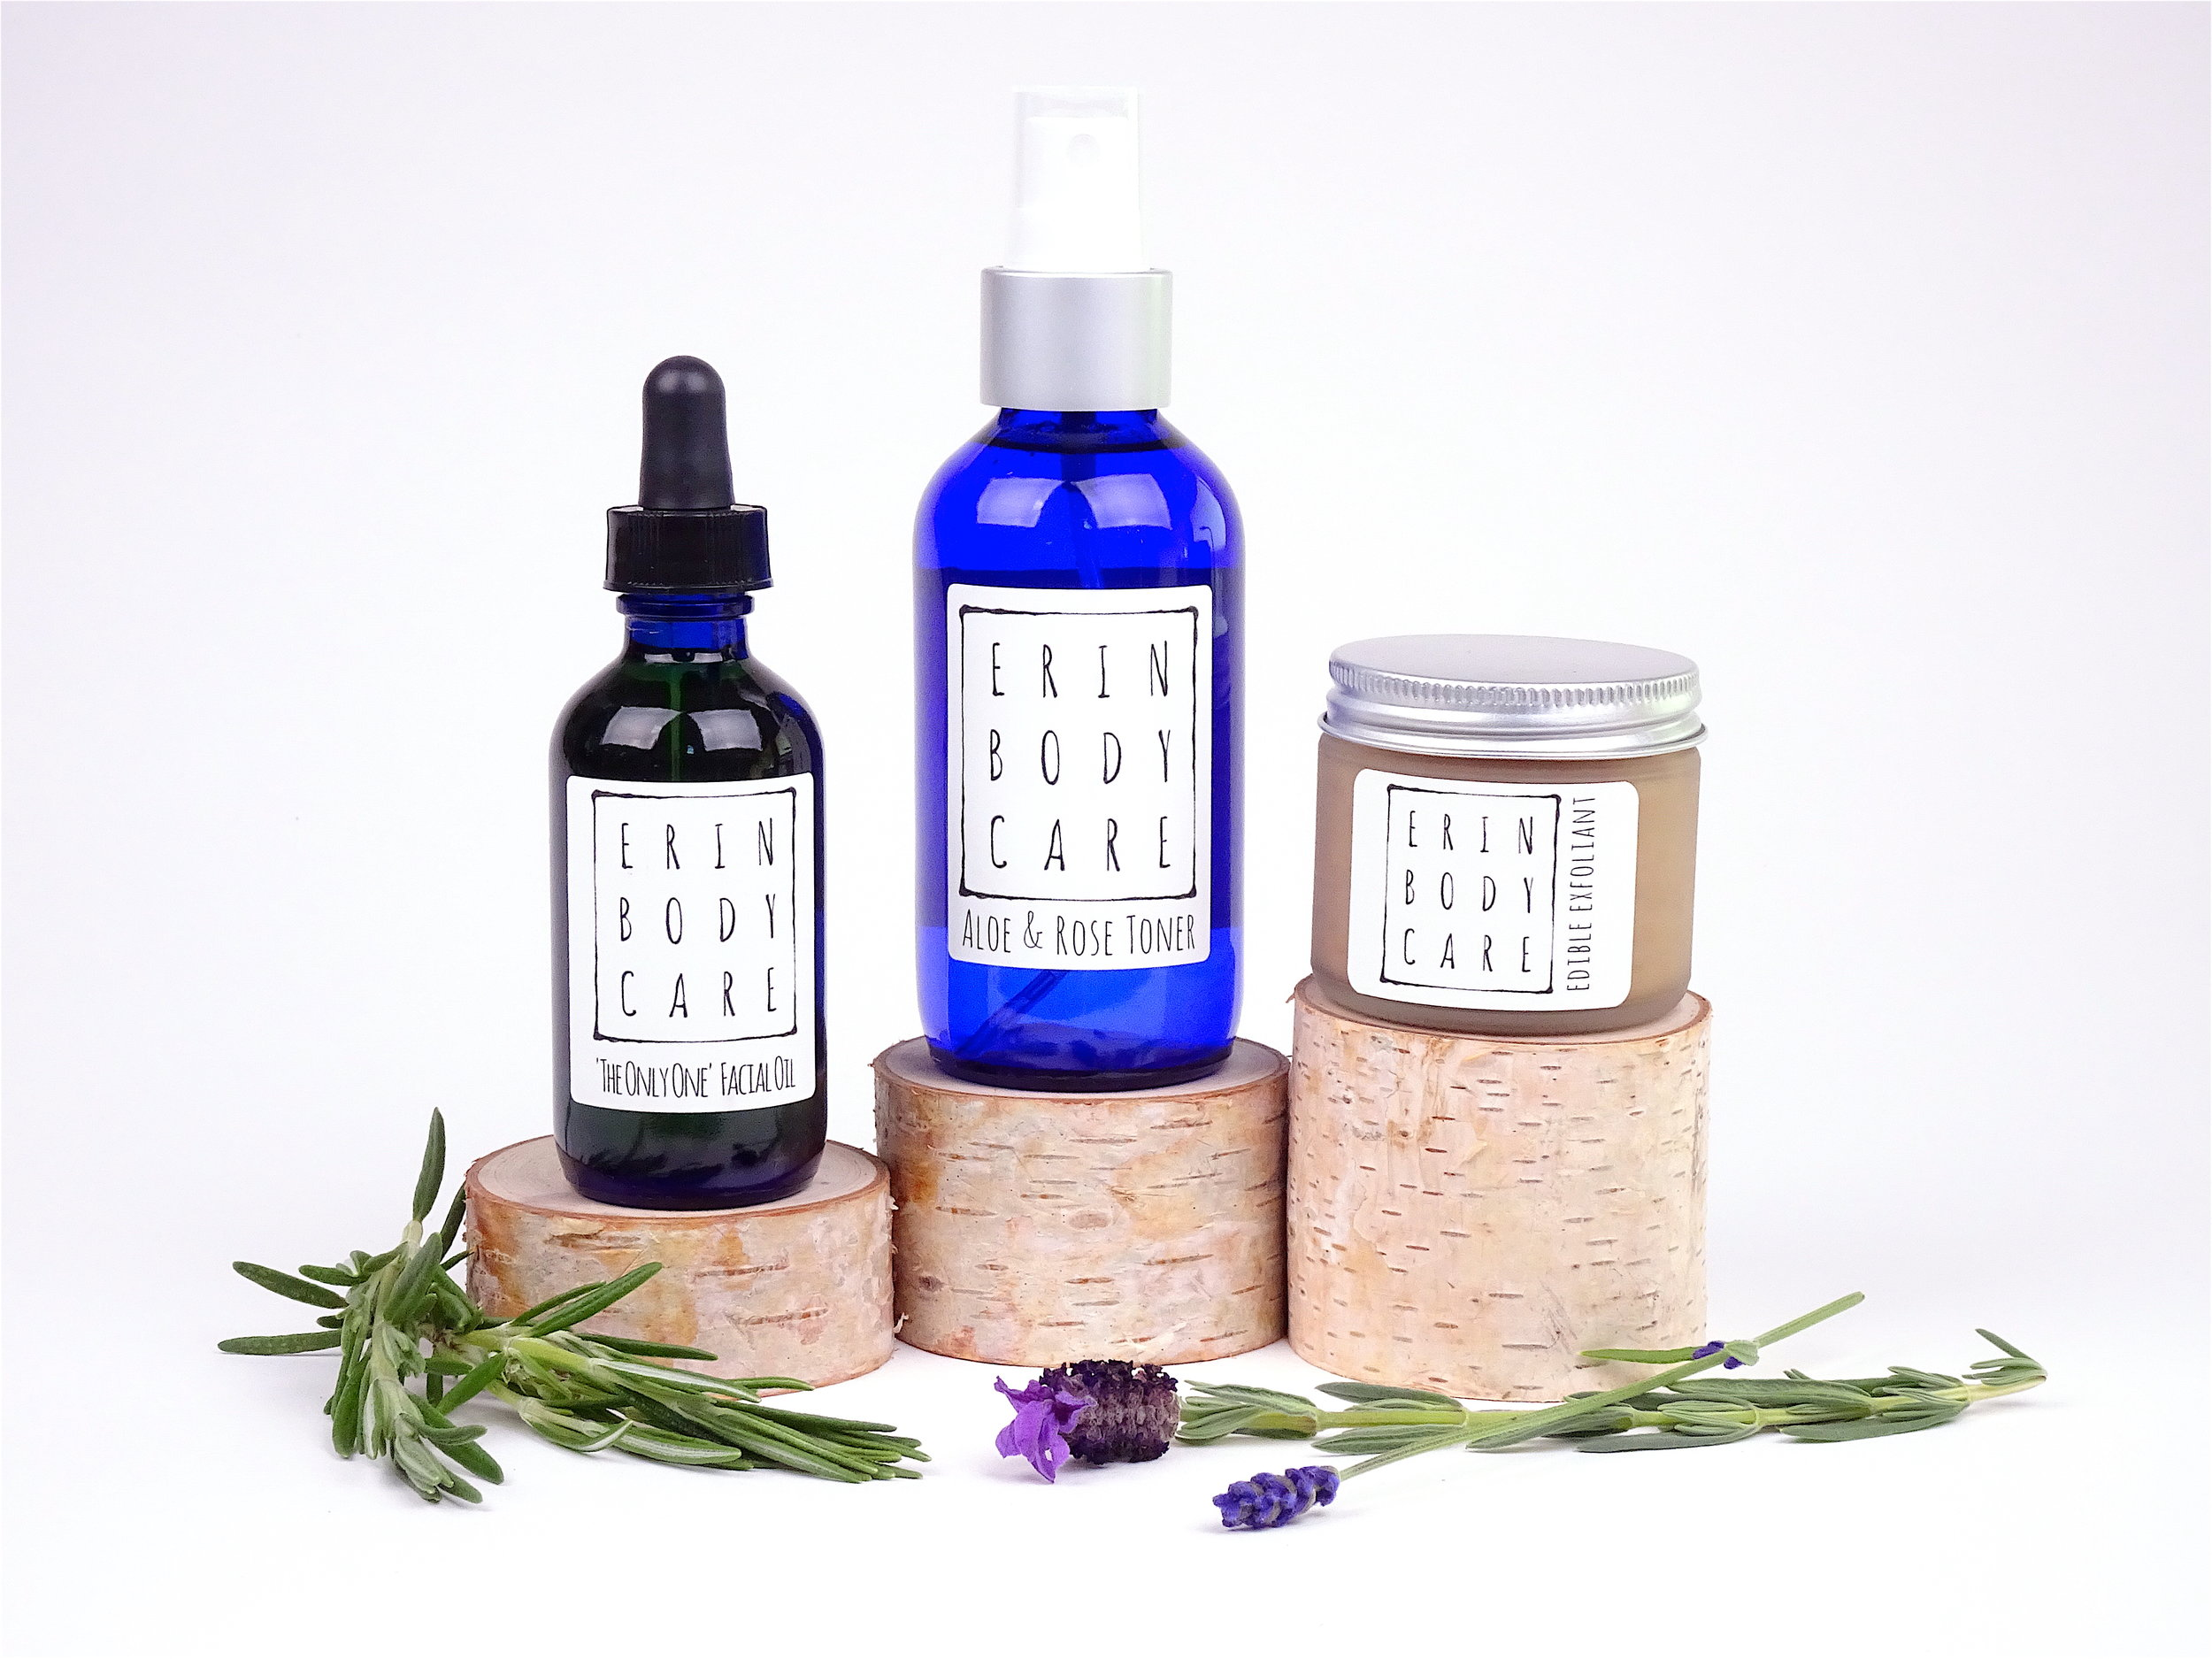 ERIN BODY CARE - Handmade Body Care Collection ~ 100% Natural ~ Plant-Based ~ Skin & Hair Care ~ Hand-Crafted in Small Batchesno parabens, no alcohols, no unnecessaries...